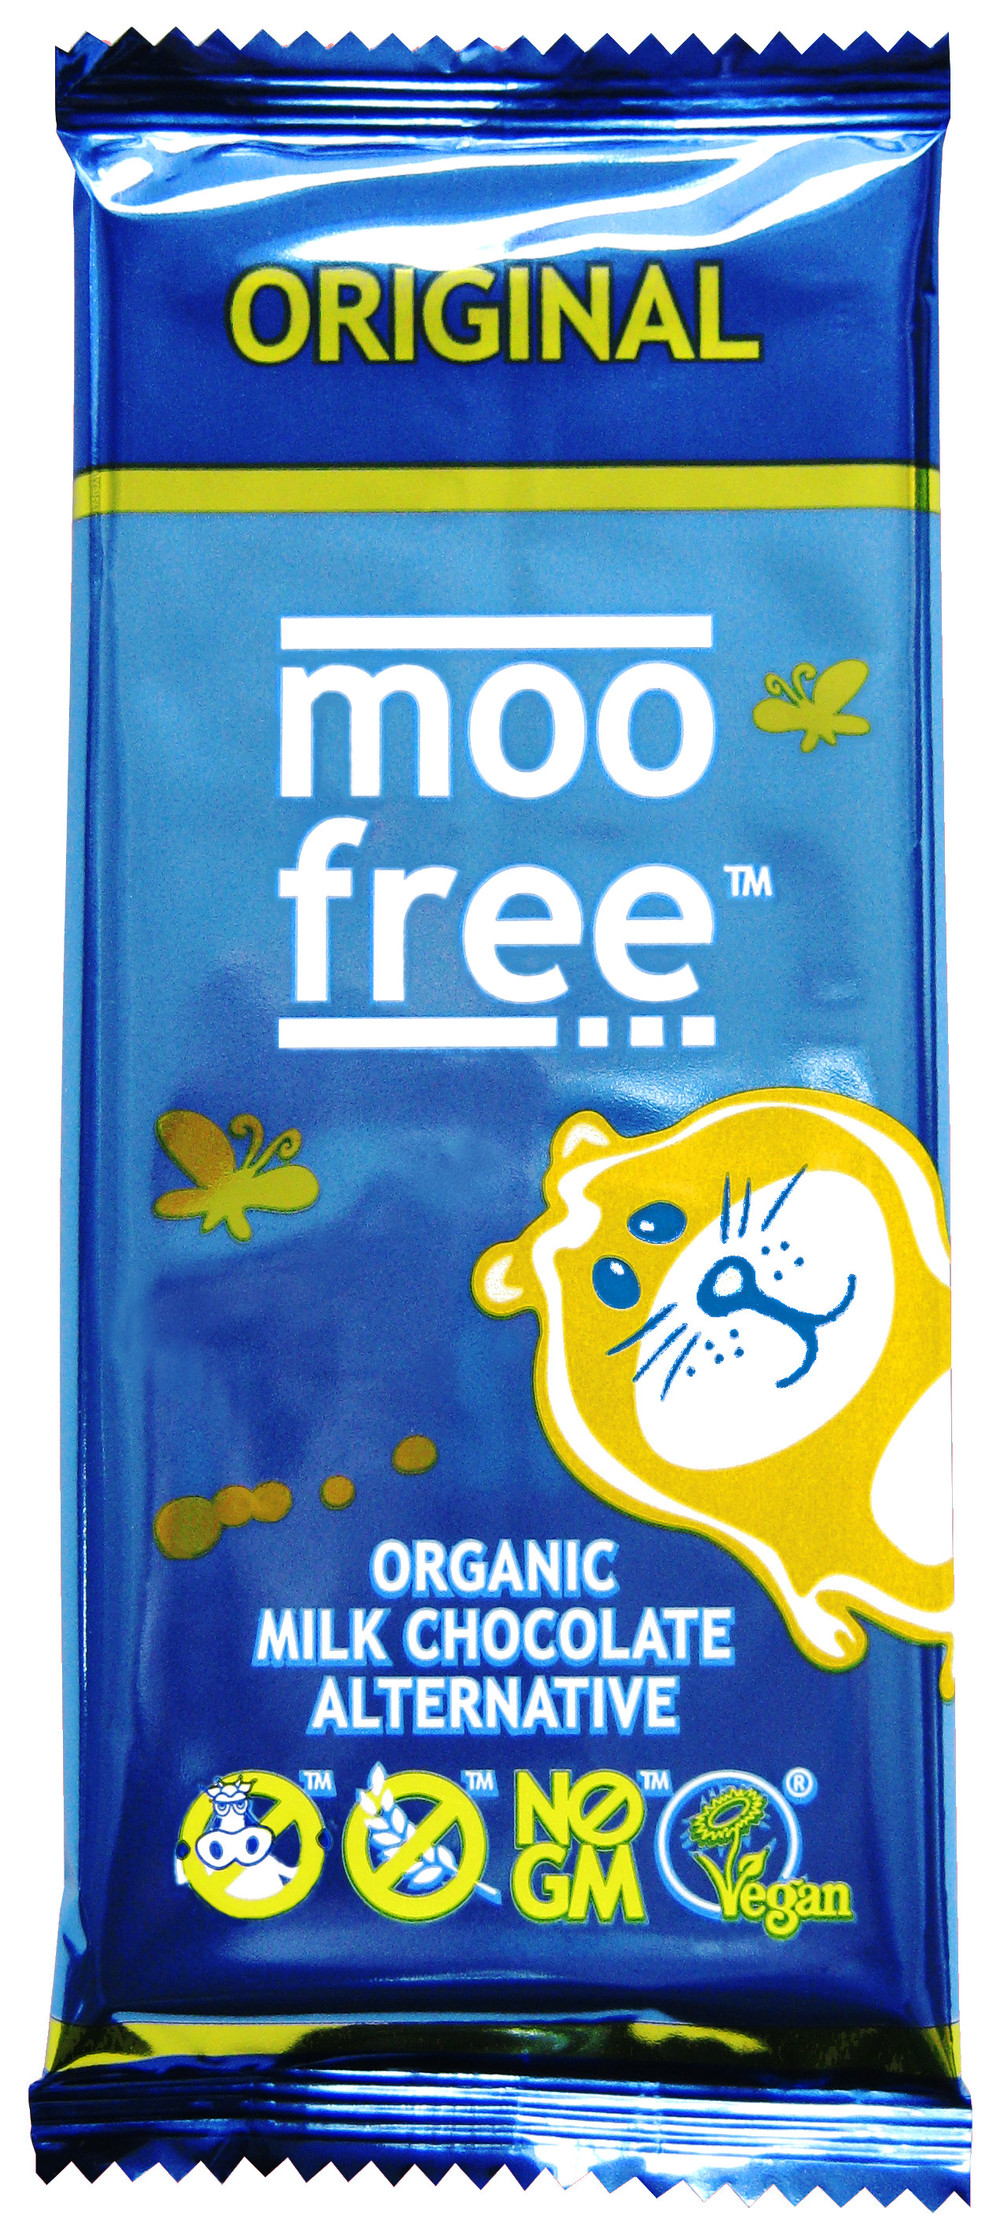 moo-free-original-100g-bar-hi-res.jpg